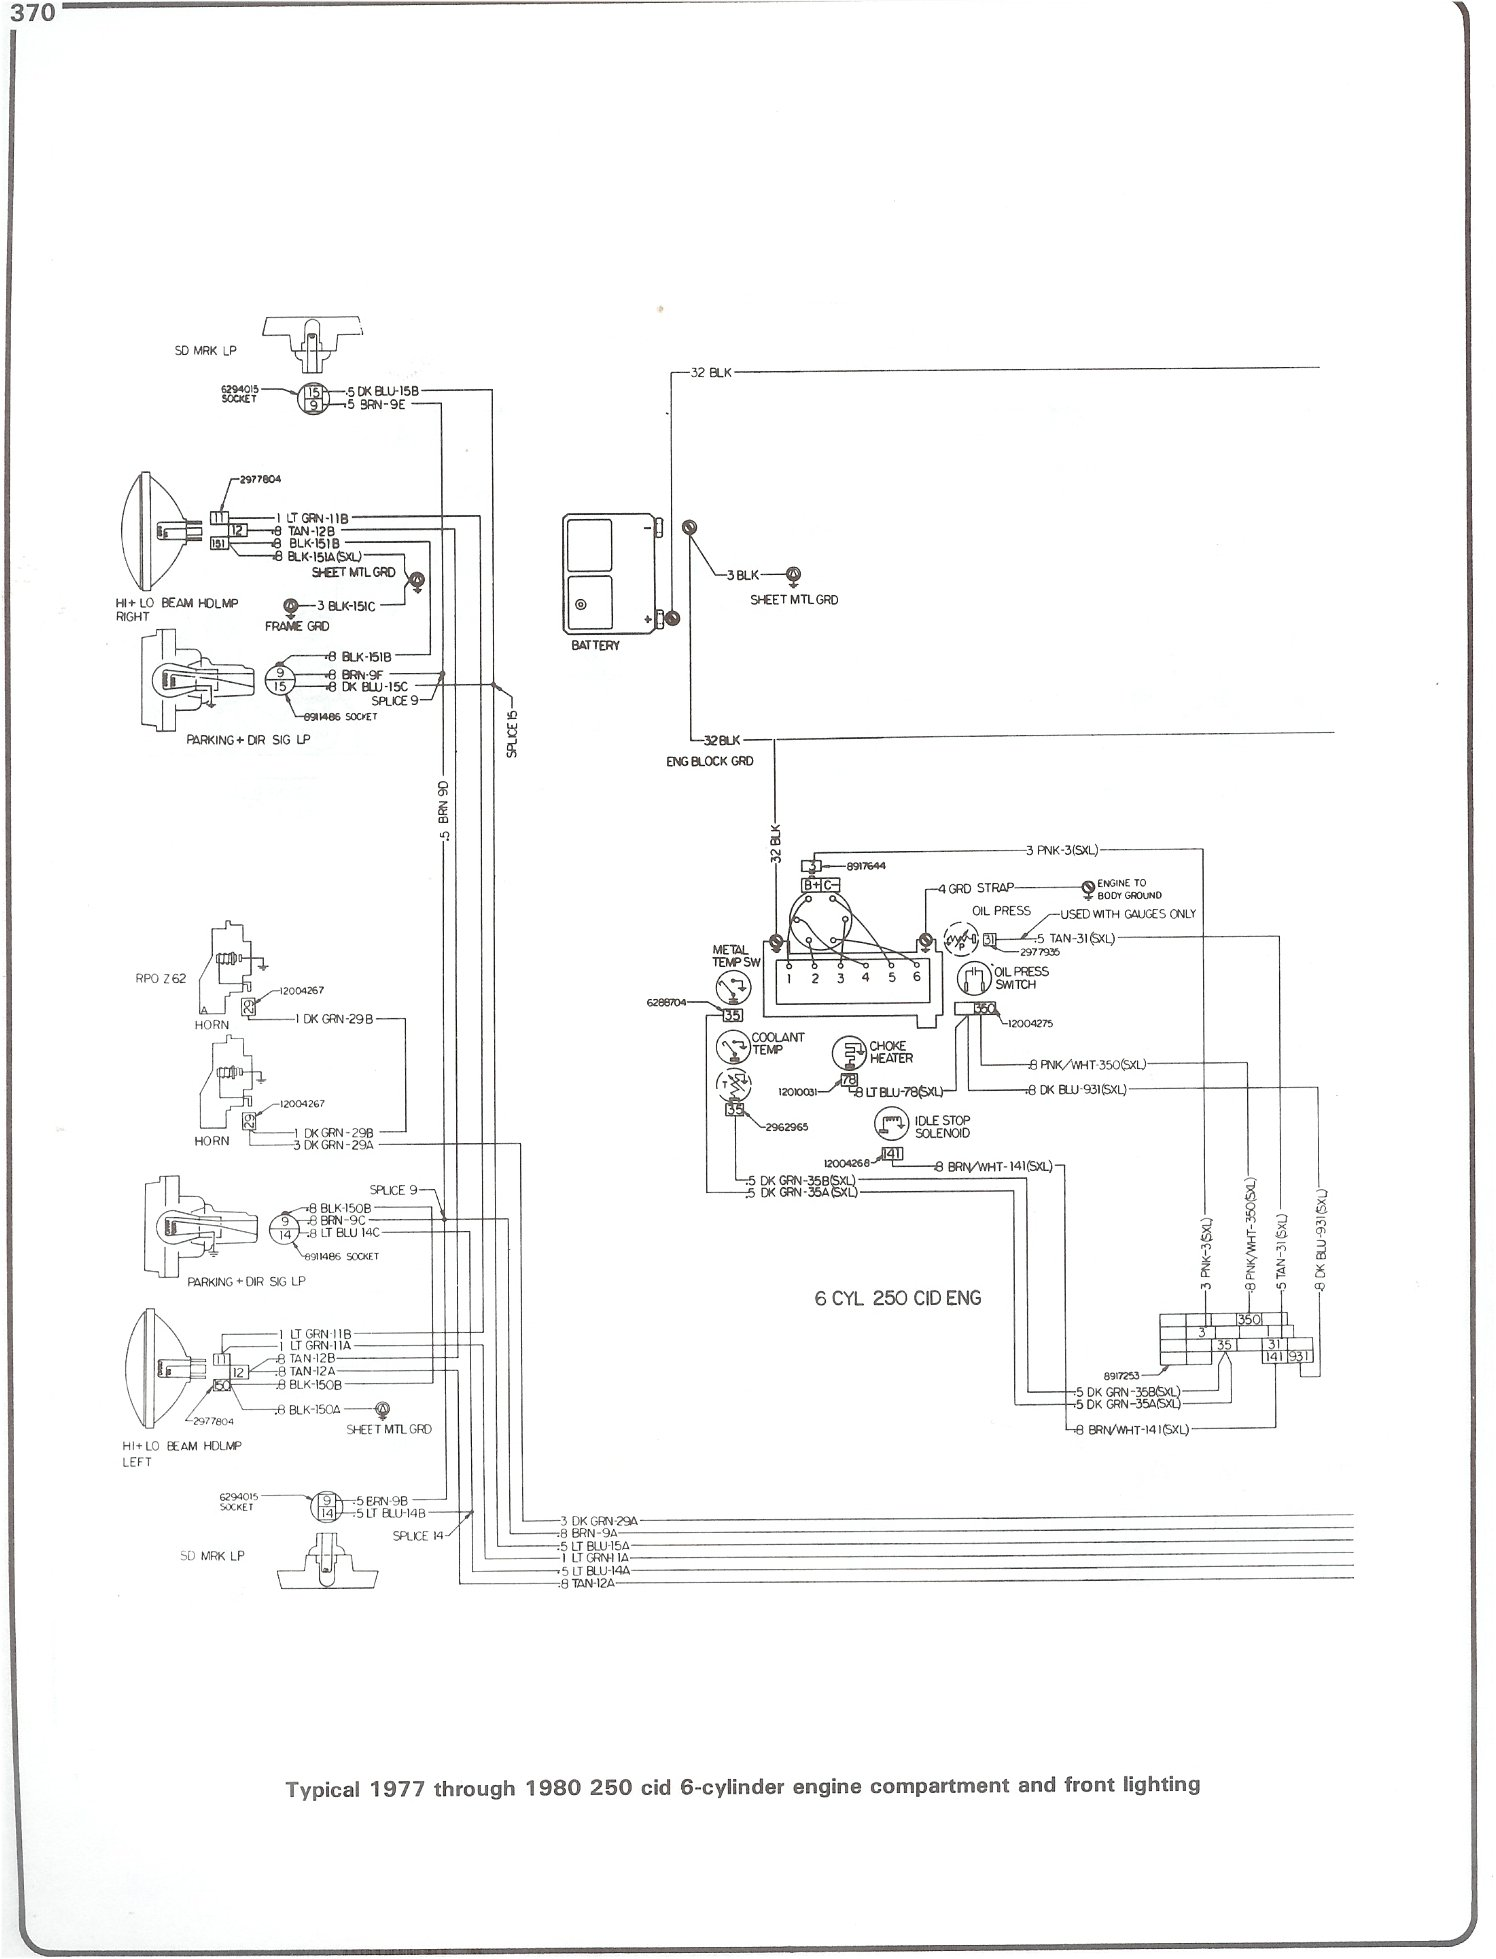 1977 Chevy Truck Wiring Schematics Library Diagram 1988 Dach 77 80 250 I6 Engine And Front Lighting